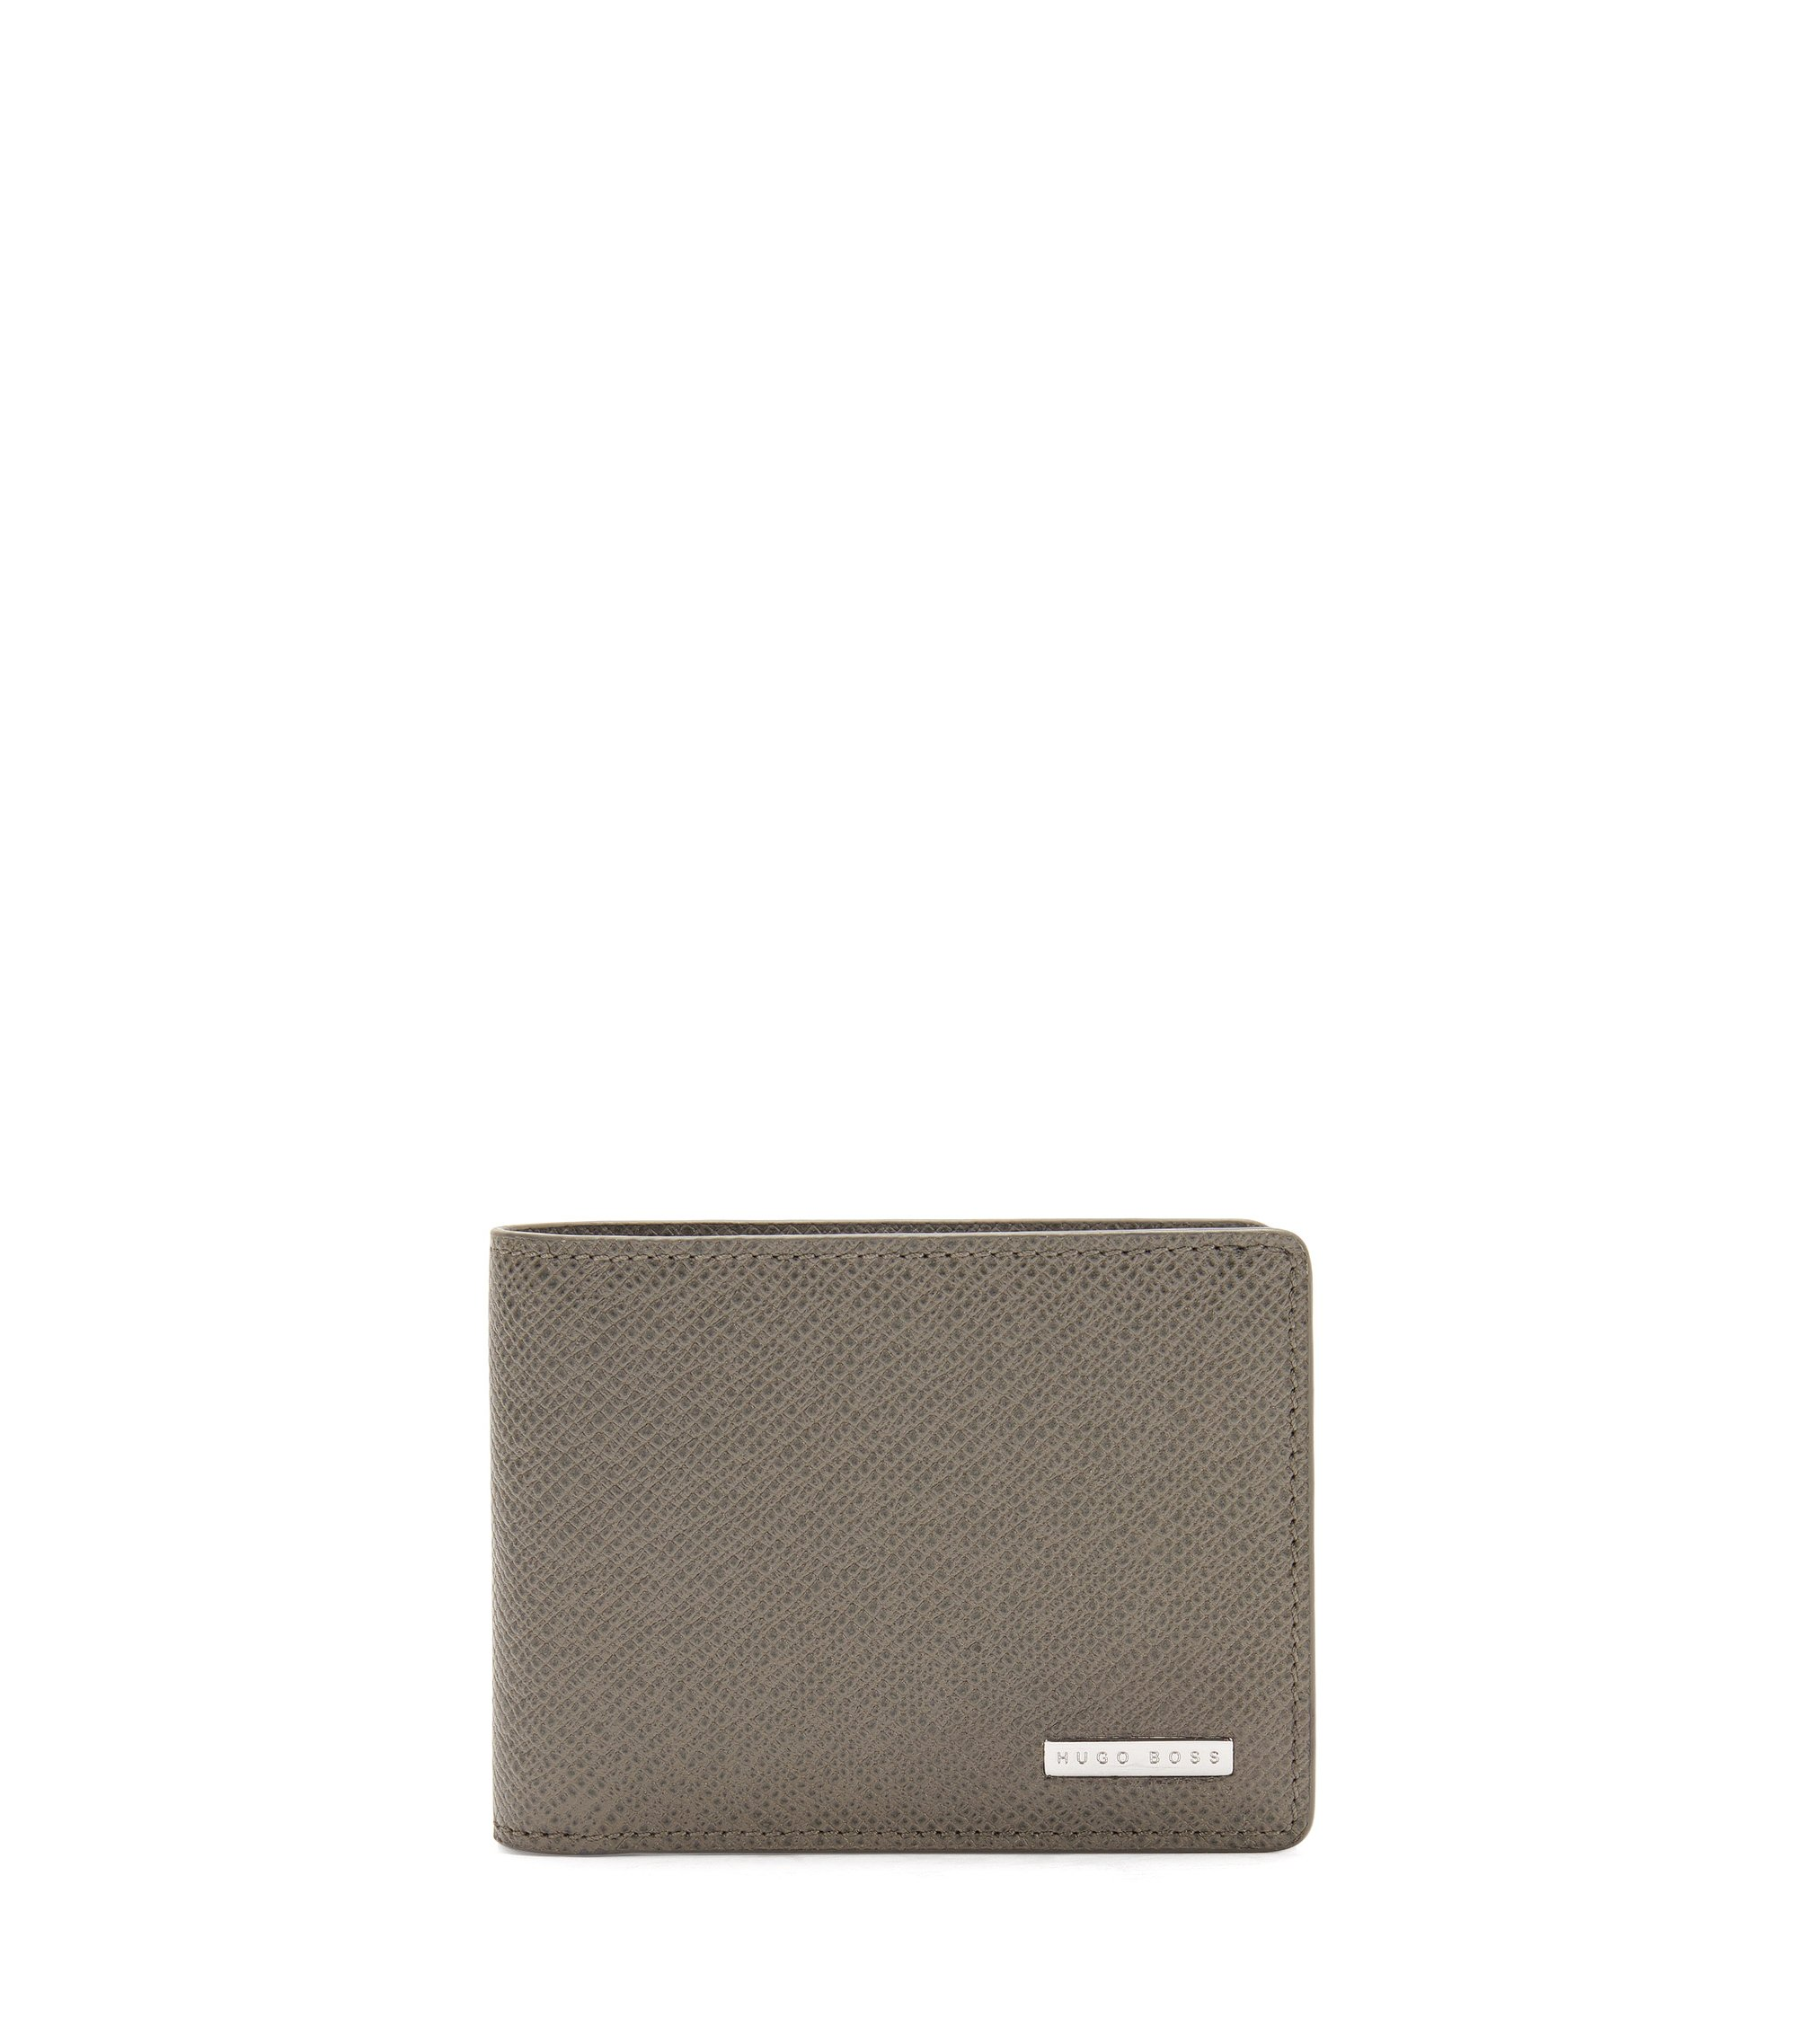 Signature Collection wallet in palmellato leather, Dark Grey